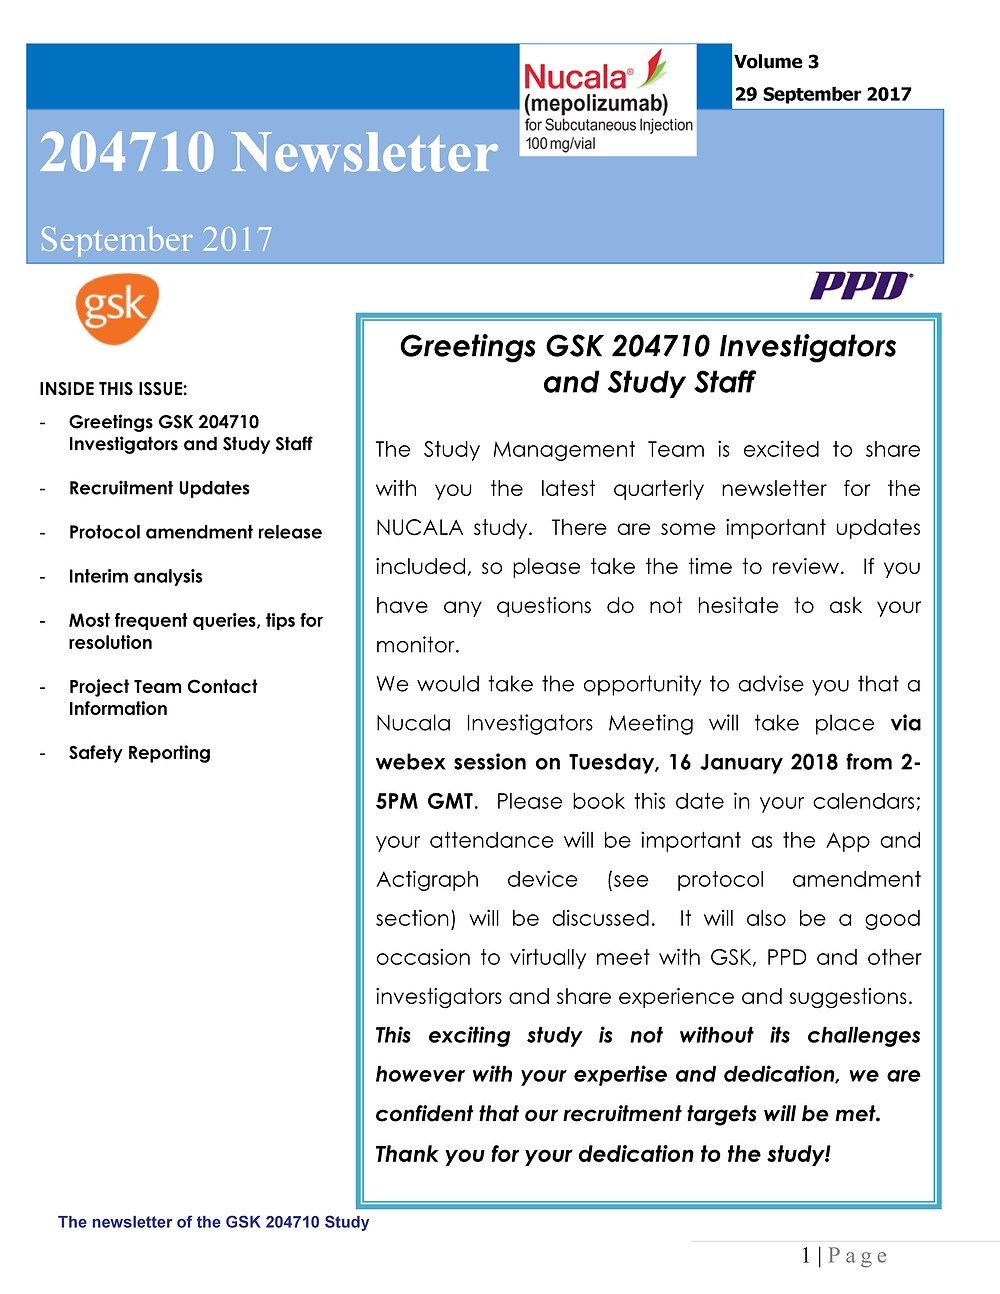 GSK nucala newsletter September 2017